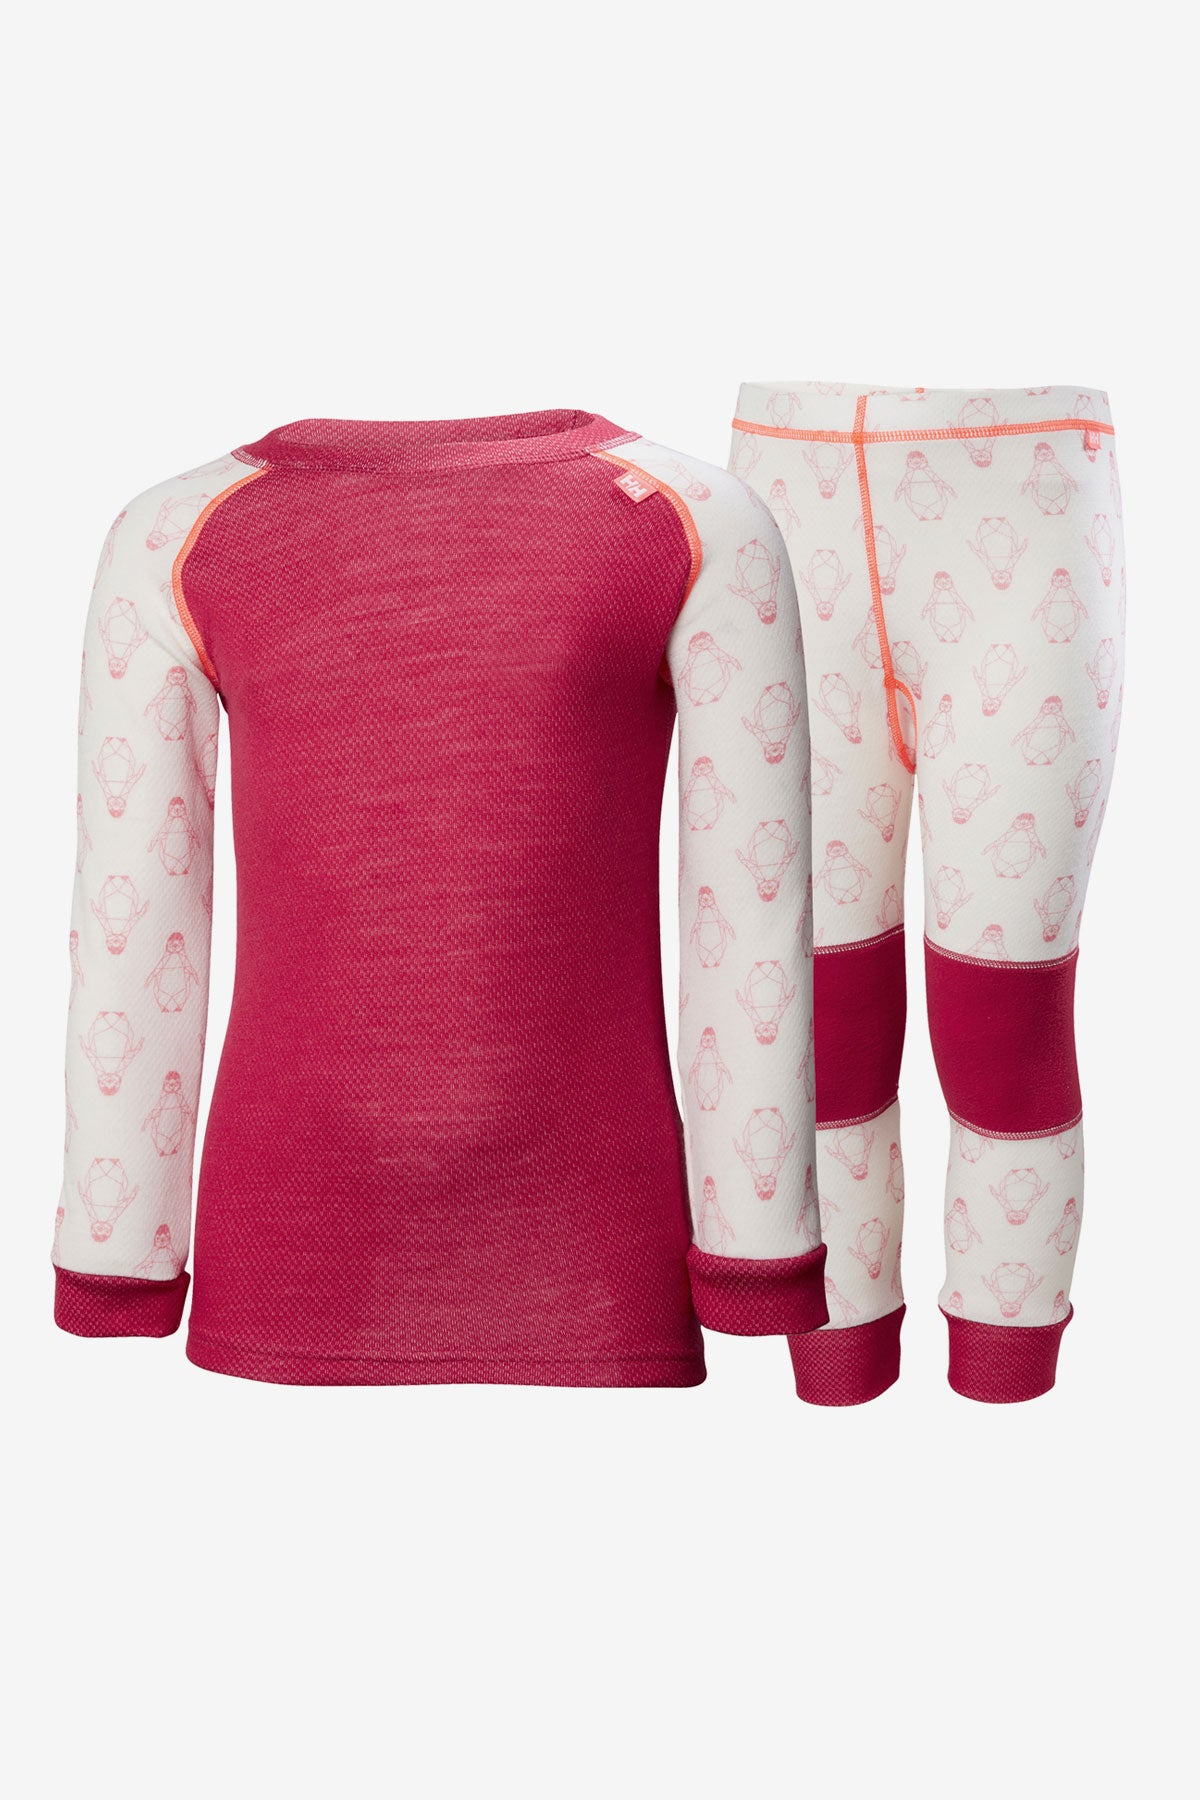 Helly Hansen Lifa Merino Baselayer Set - Persian Red